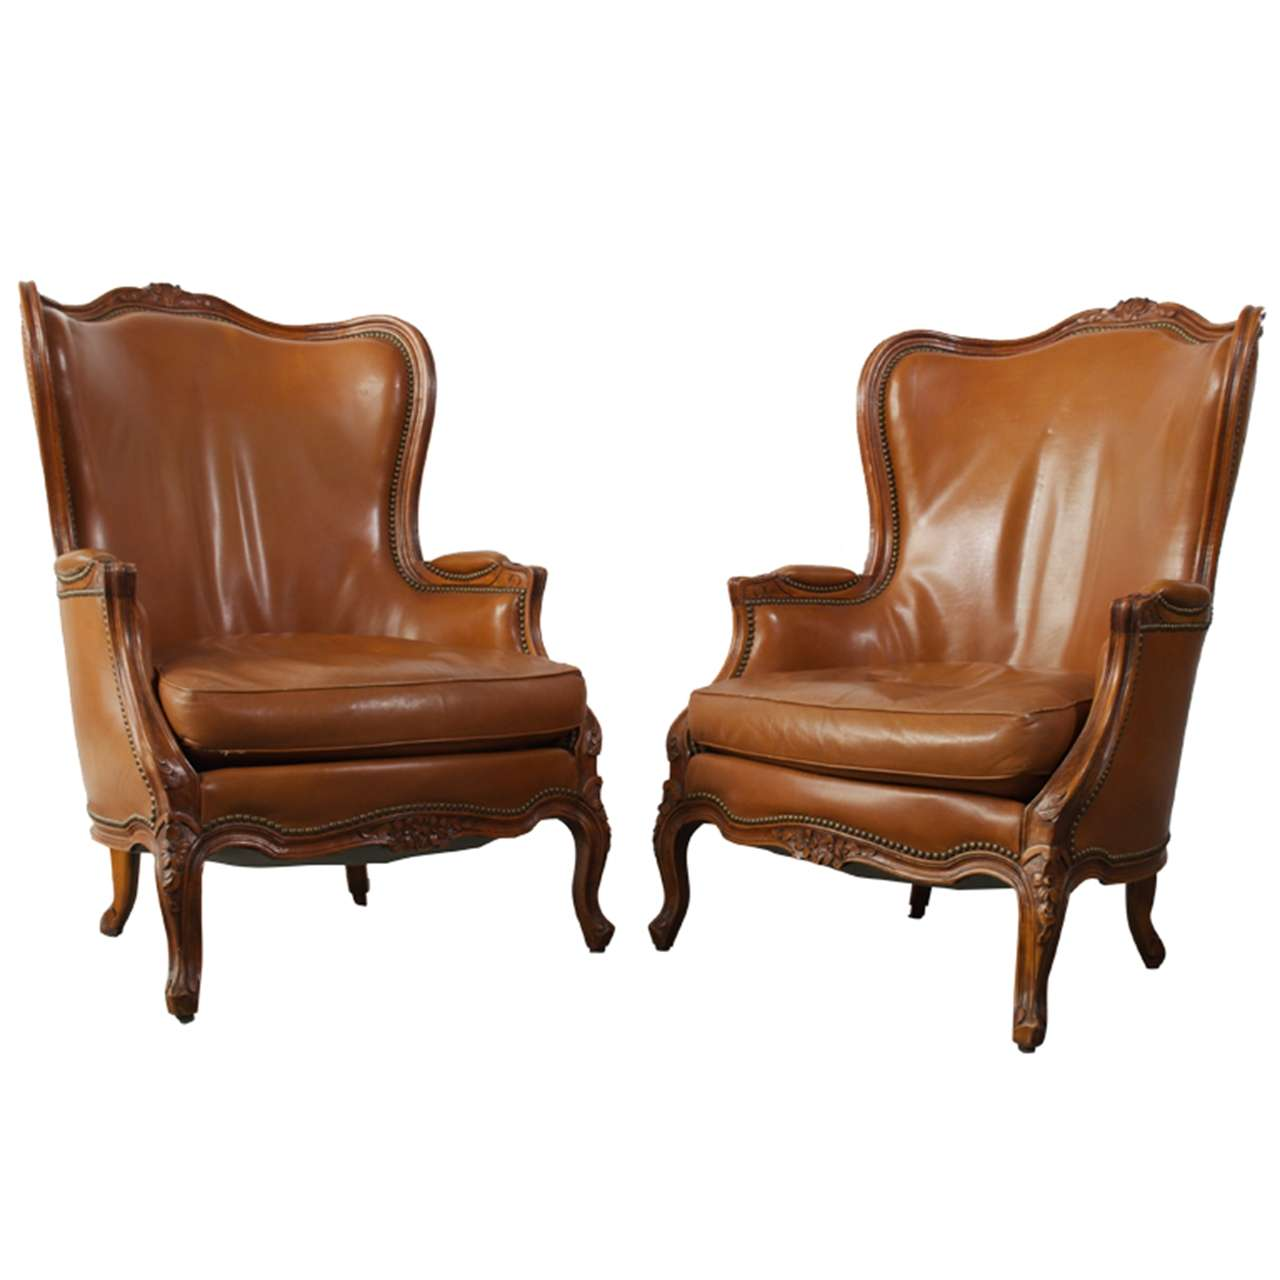 Louis 15th style bergere chairs at 1stdibs - Louis th chairs ...